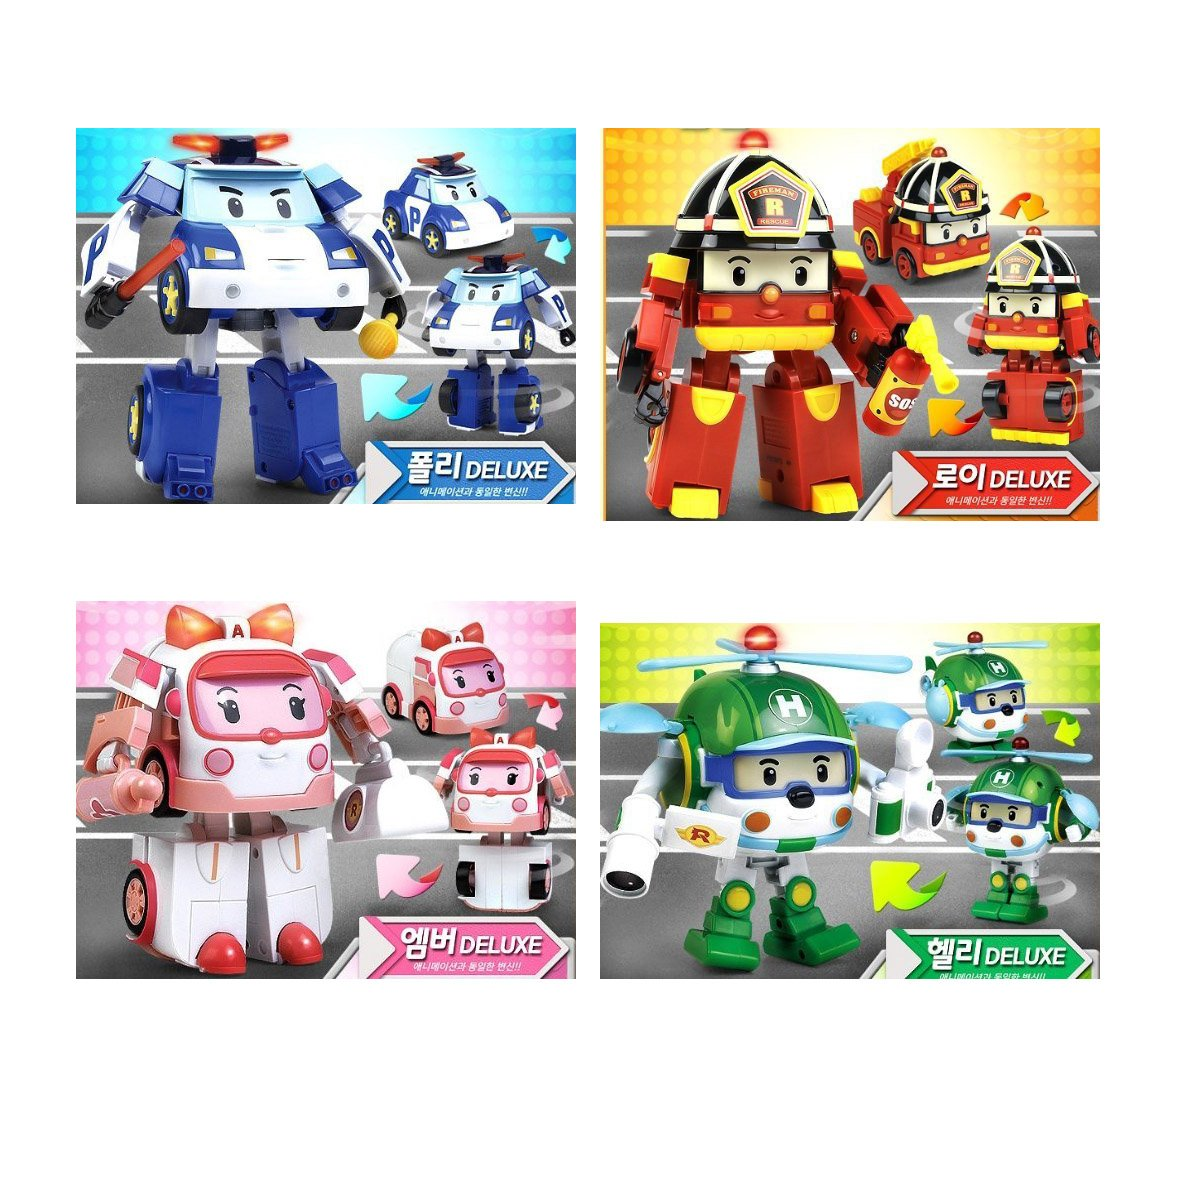 Deluxe Transformable Robocar Poli Toy SET [Poli+Amber+Roy+Helly], Special Limited Edition